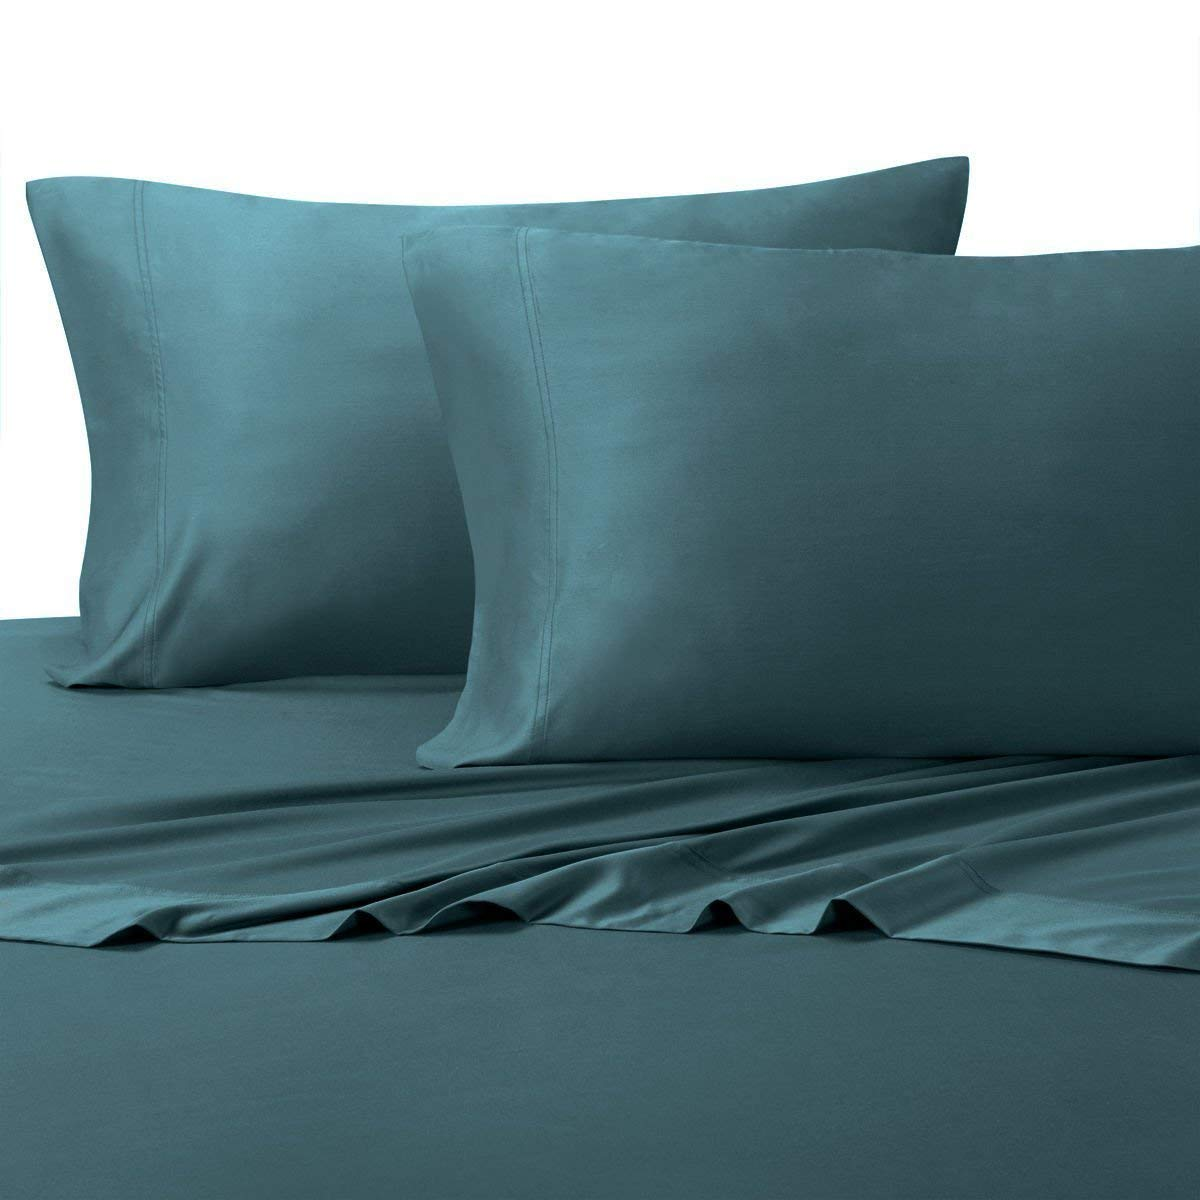 """Silky and Soft Bamboo Blend Sheets, 60% Viscose from Bamboo / 40% Cotton Hybird Weave Sheet Set, Hypo-Allergenic, 18"""" Pockets, Teal, 3 Piece Twin Extra Long (Twin XL) Size Deep Pocket Sheet Set"""